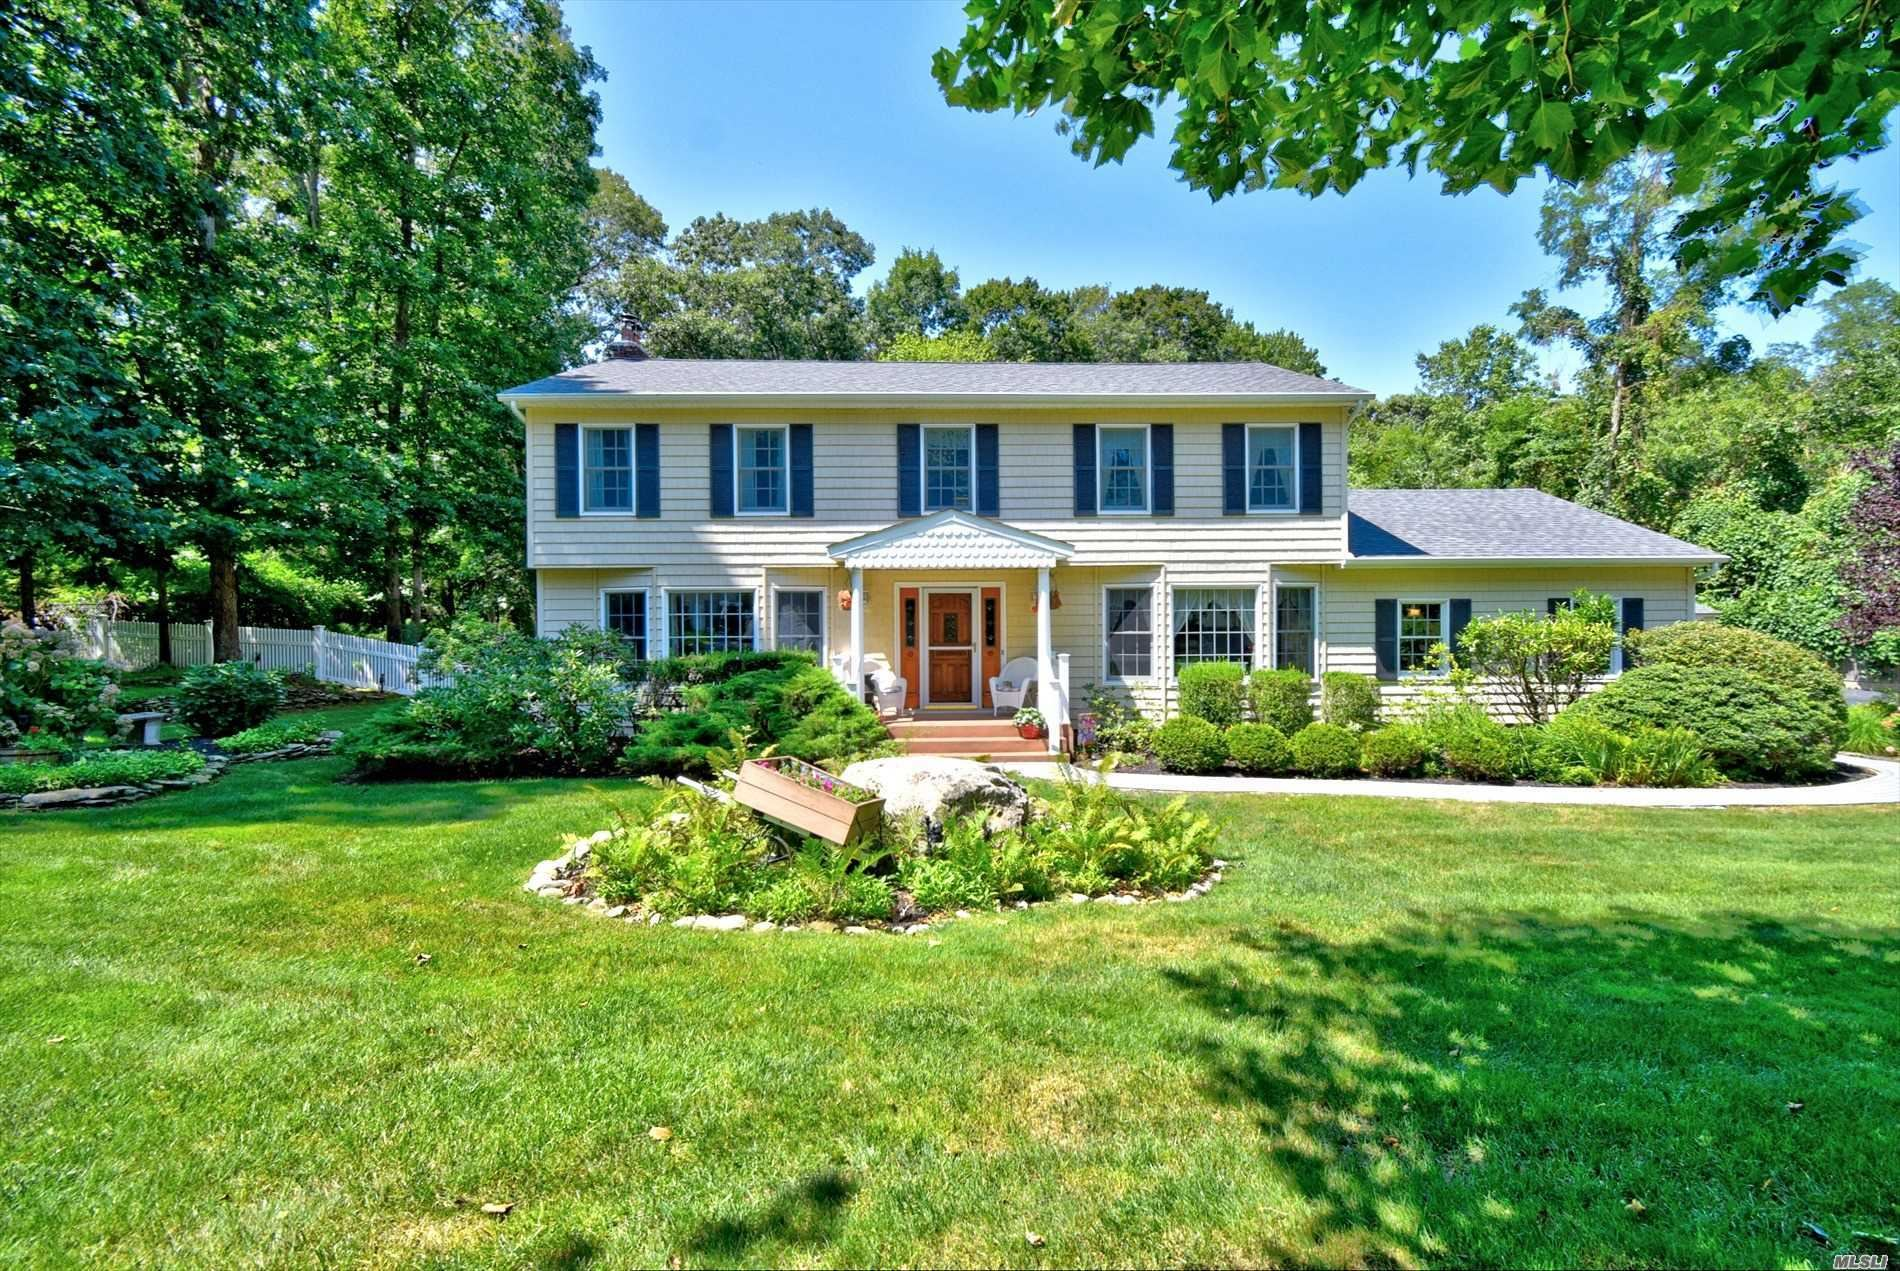 11 Frost Lane, Wading River, NY 11792 - MLS#: 3244112